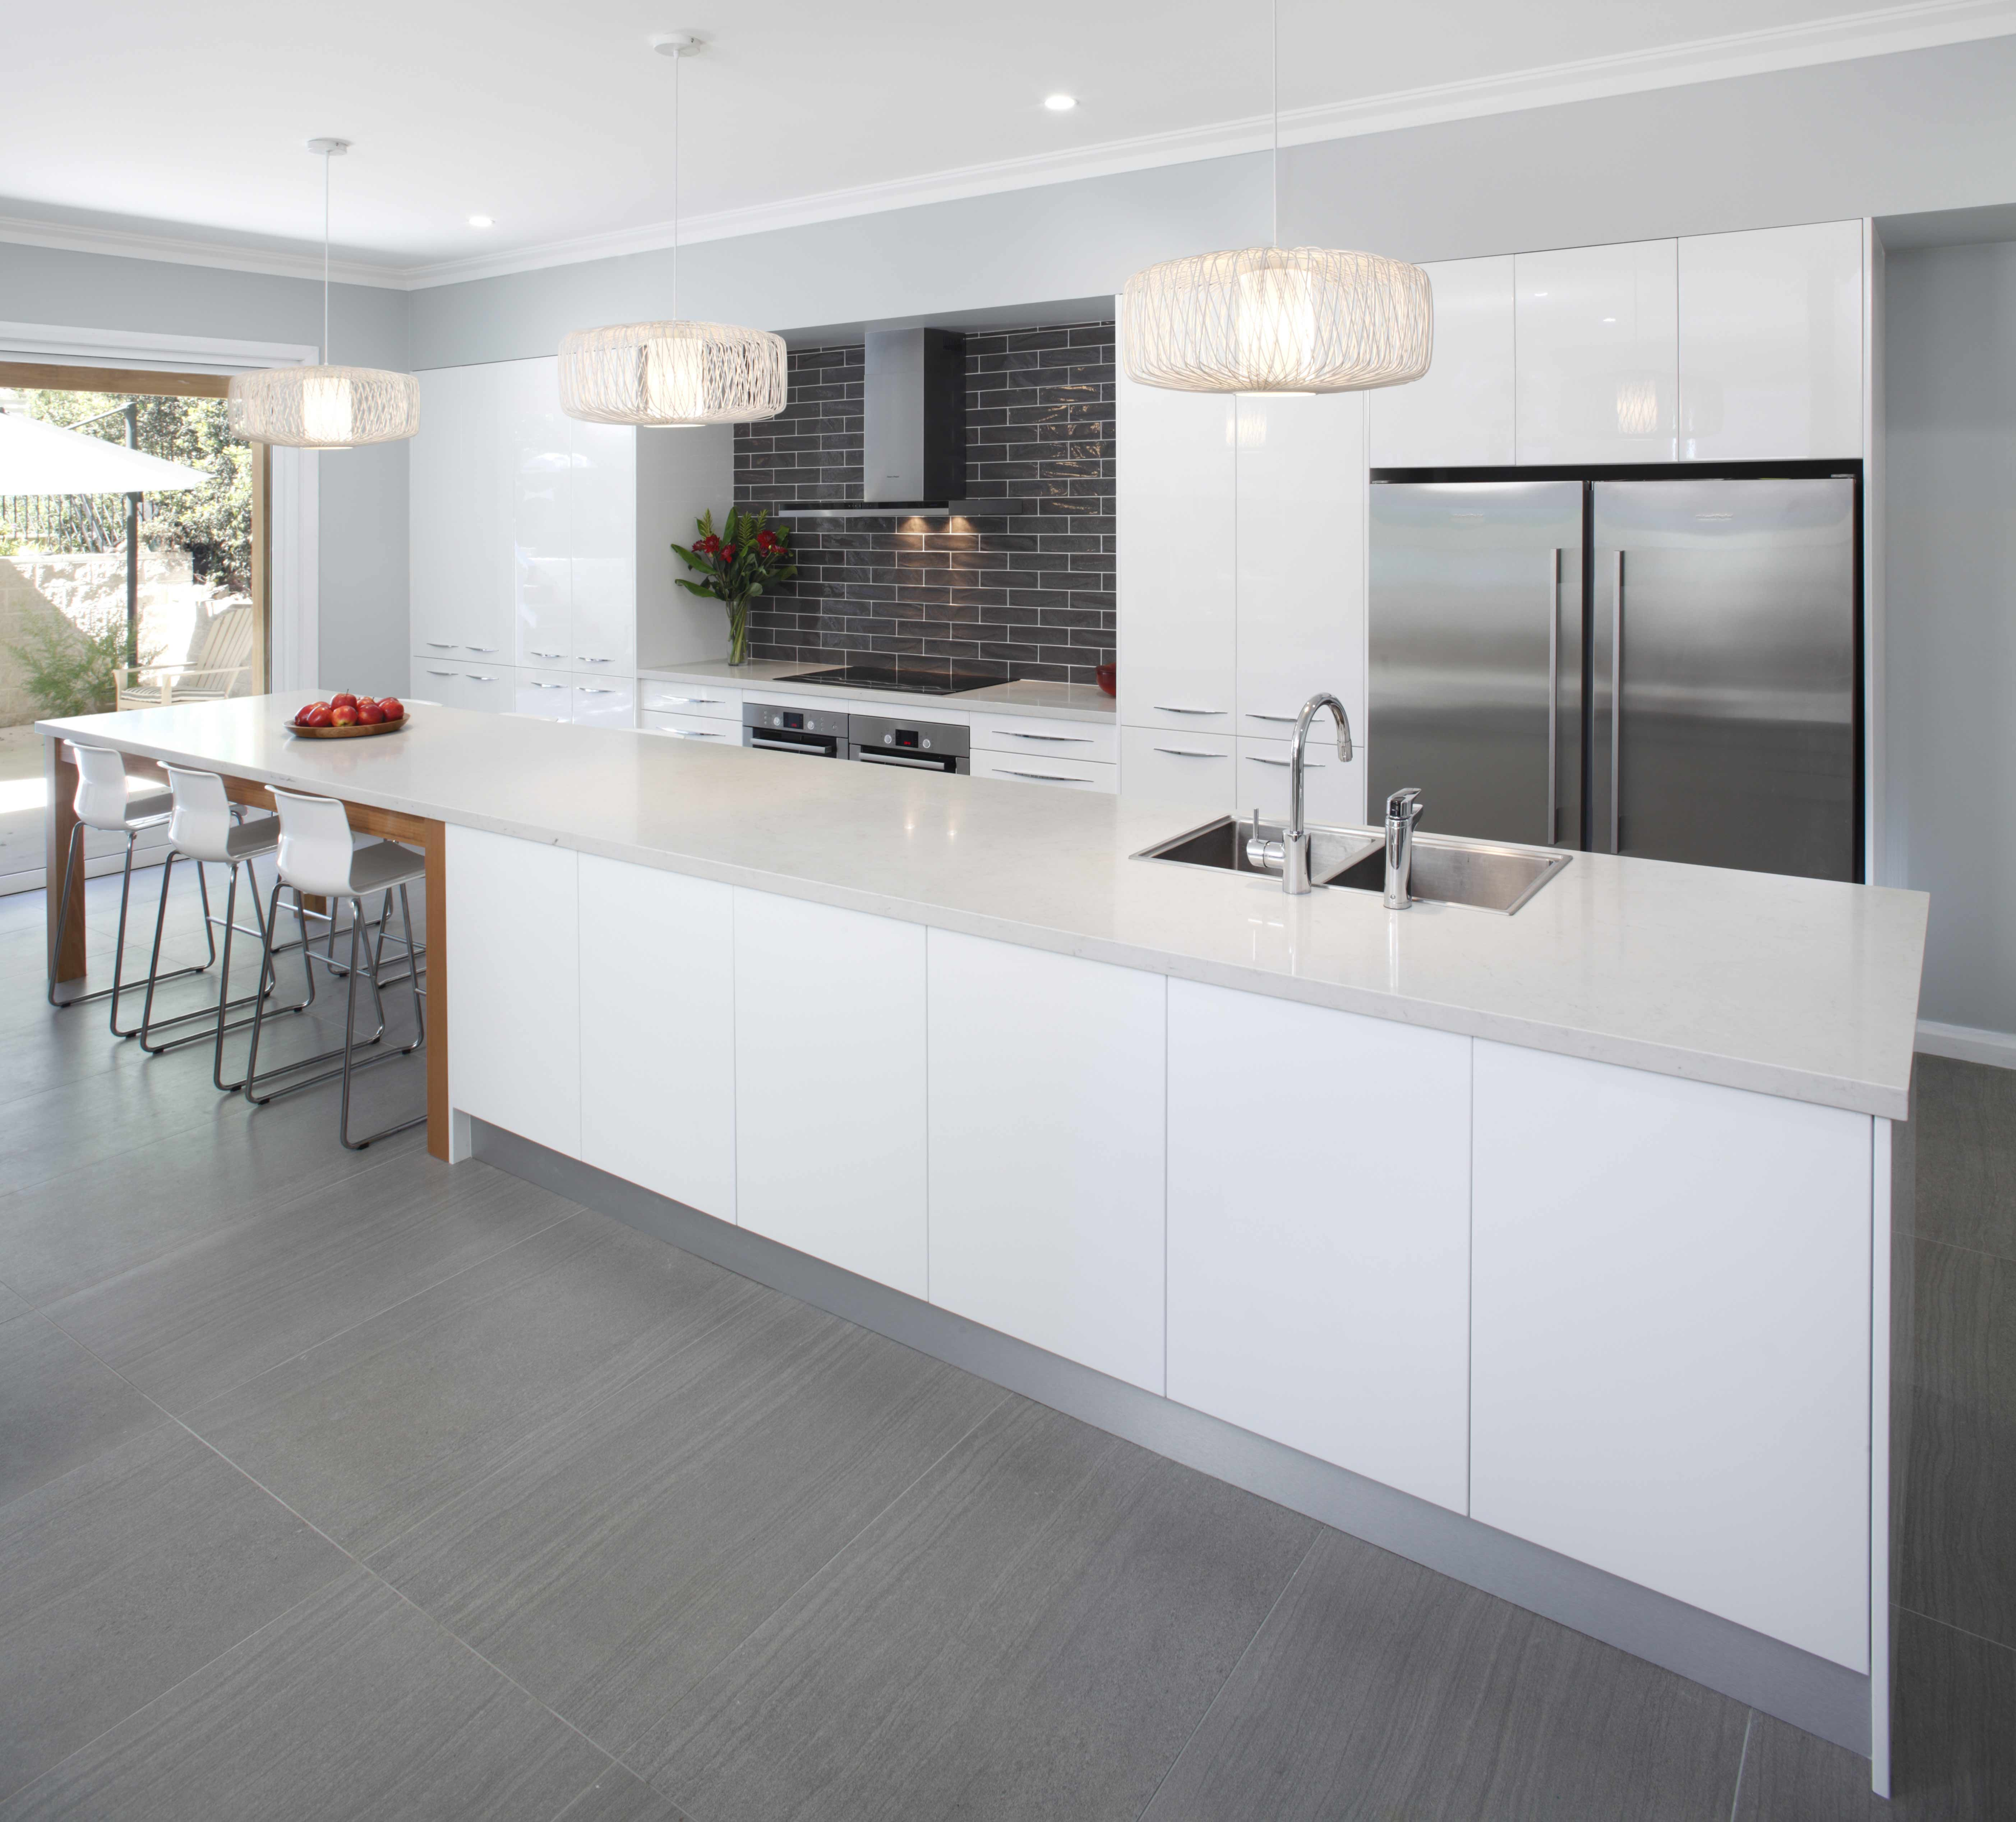 Kitchen Renovation In Sydney, New & Modern Kitchens Sydney